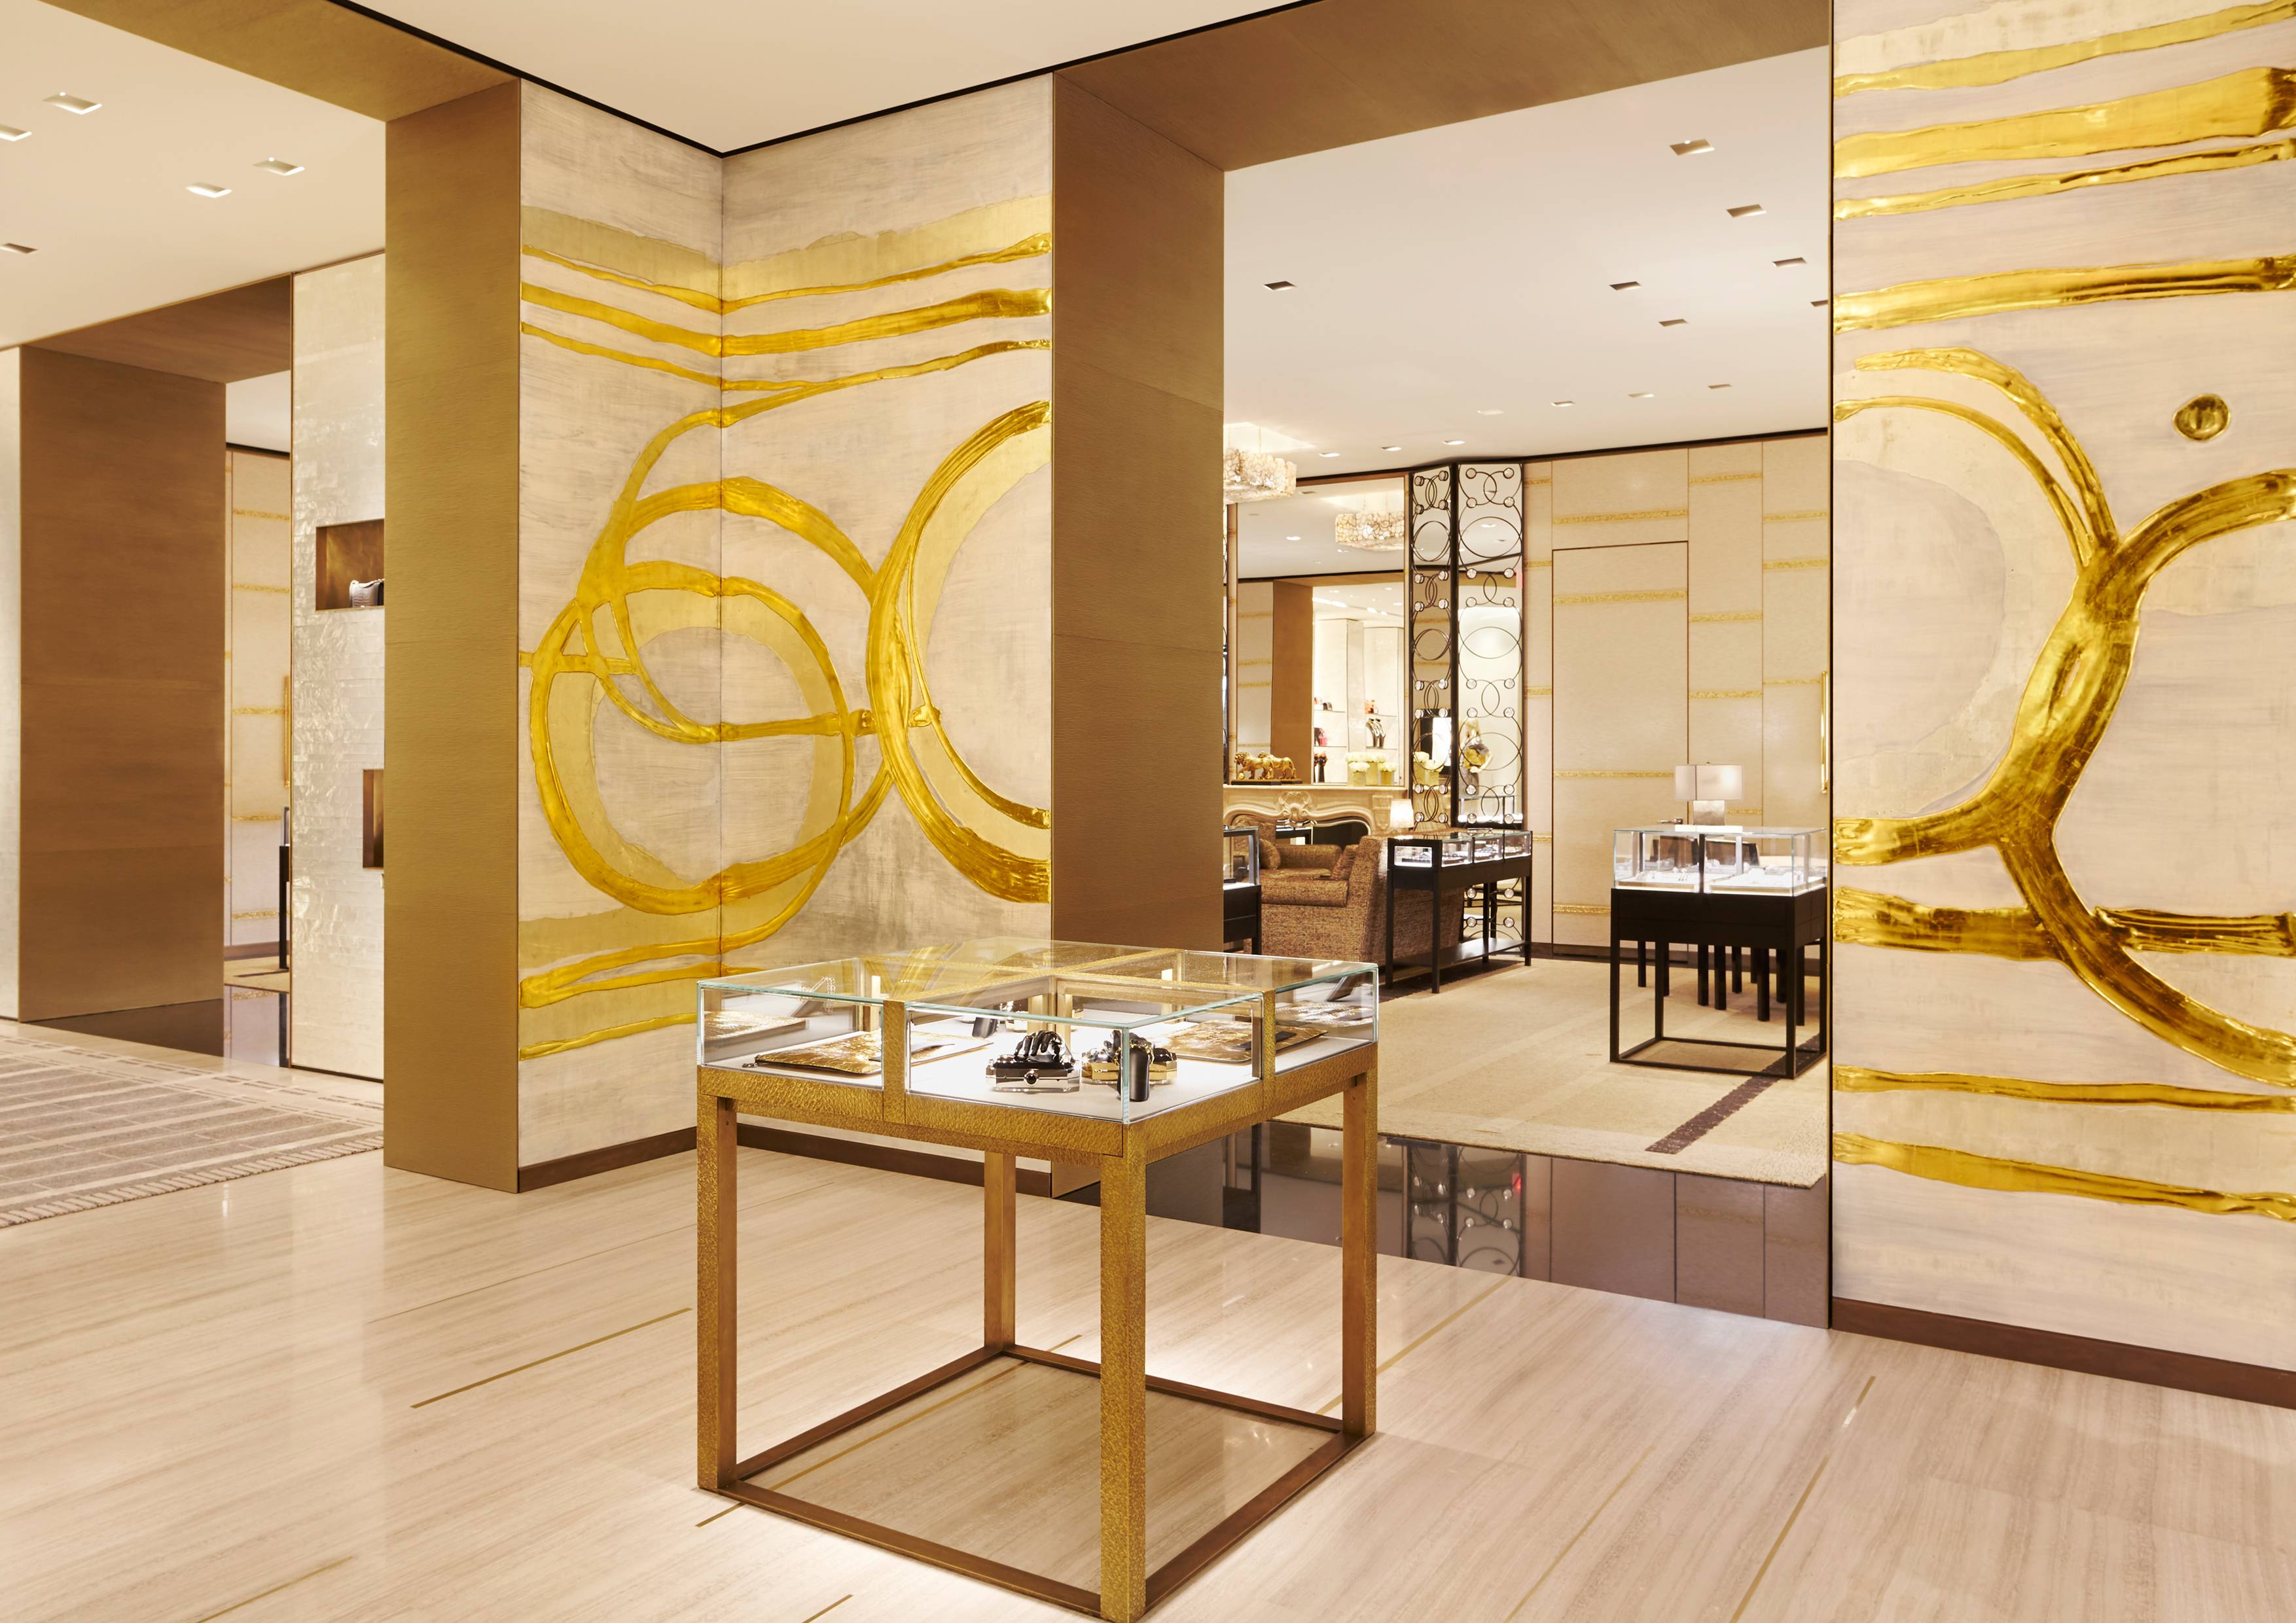 la chanel at south coast plaza gets a golden makeover south coast plaza boutique pictures by sam frost 010